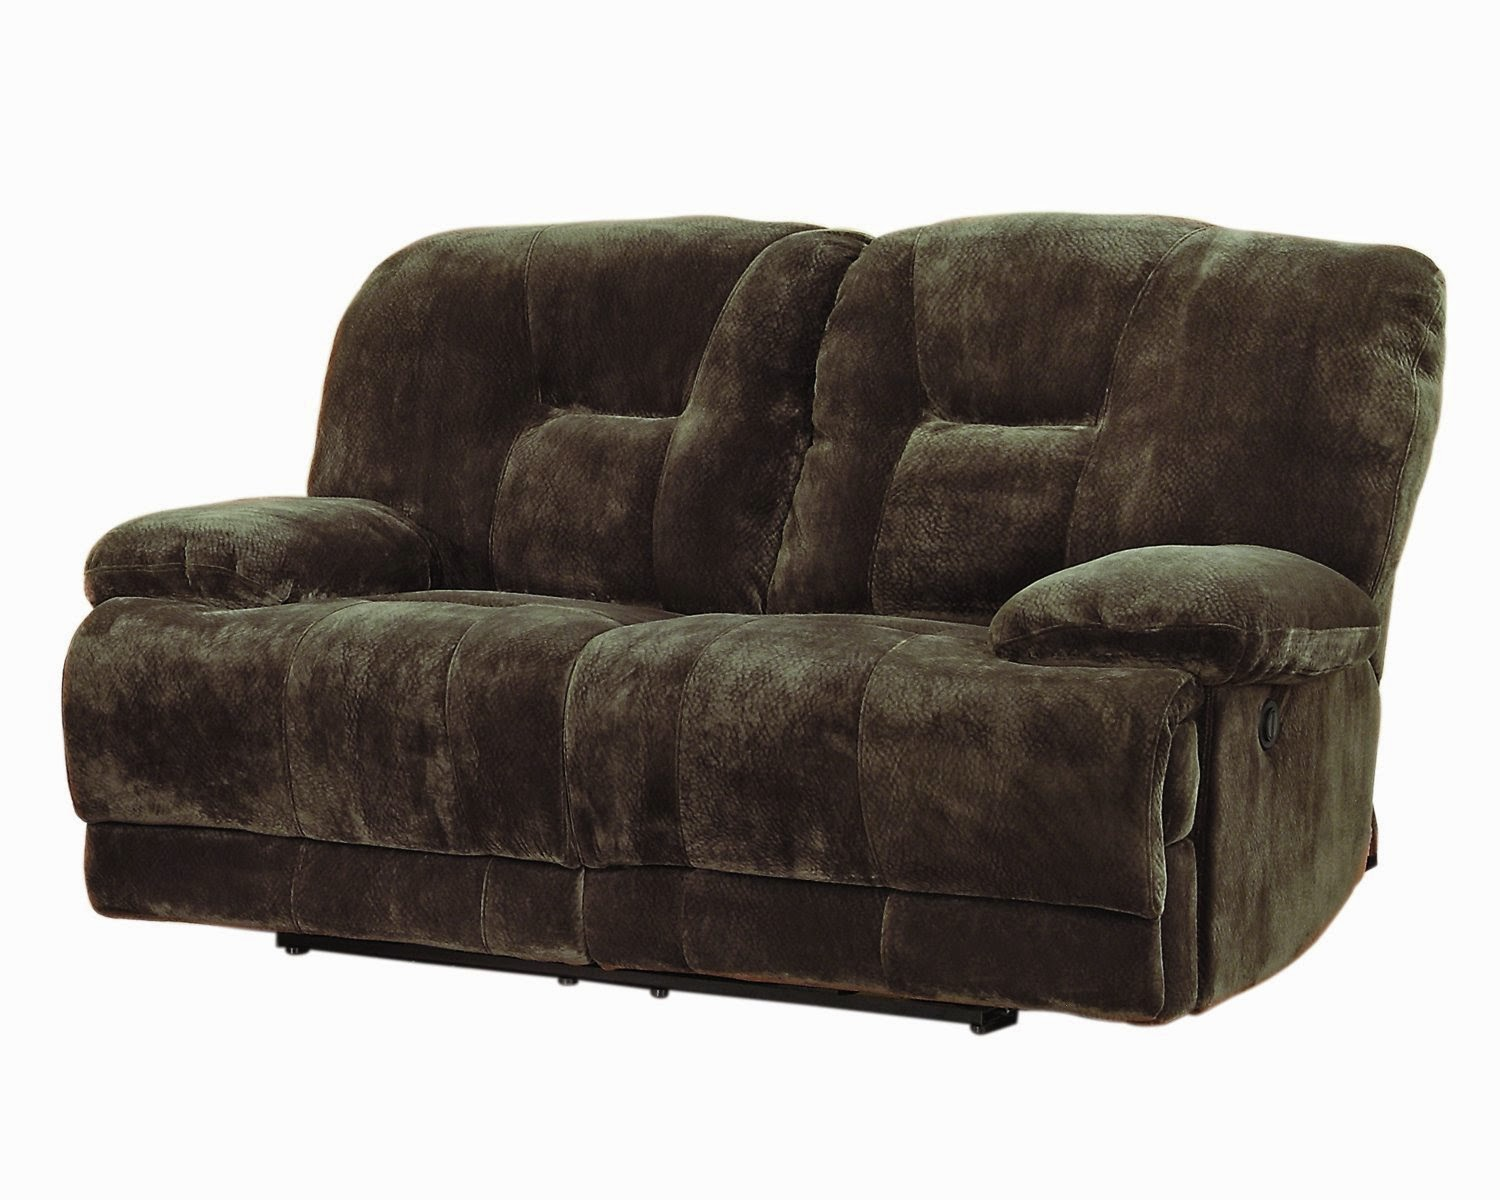 Two Seater Sofa Recliner How To Reupholster A No Sew Where Is The Best Place Buy 2